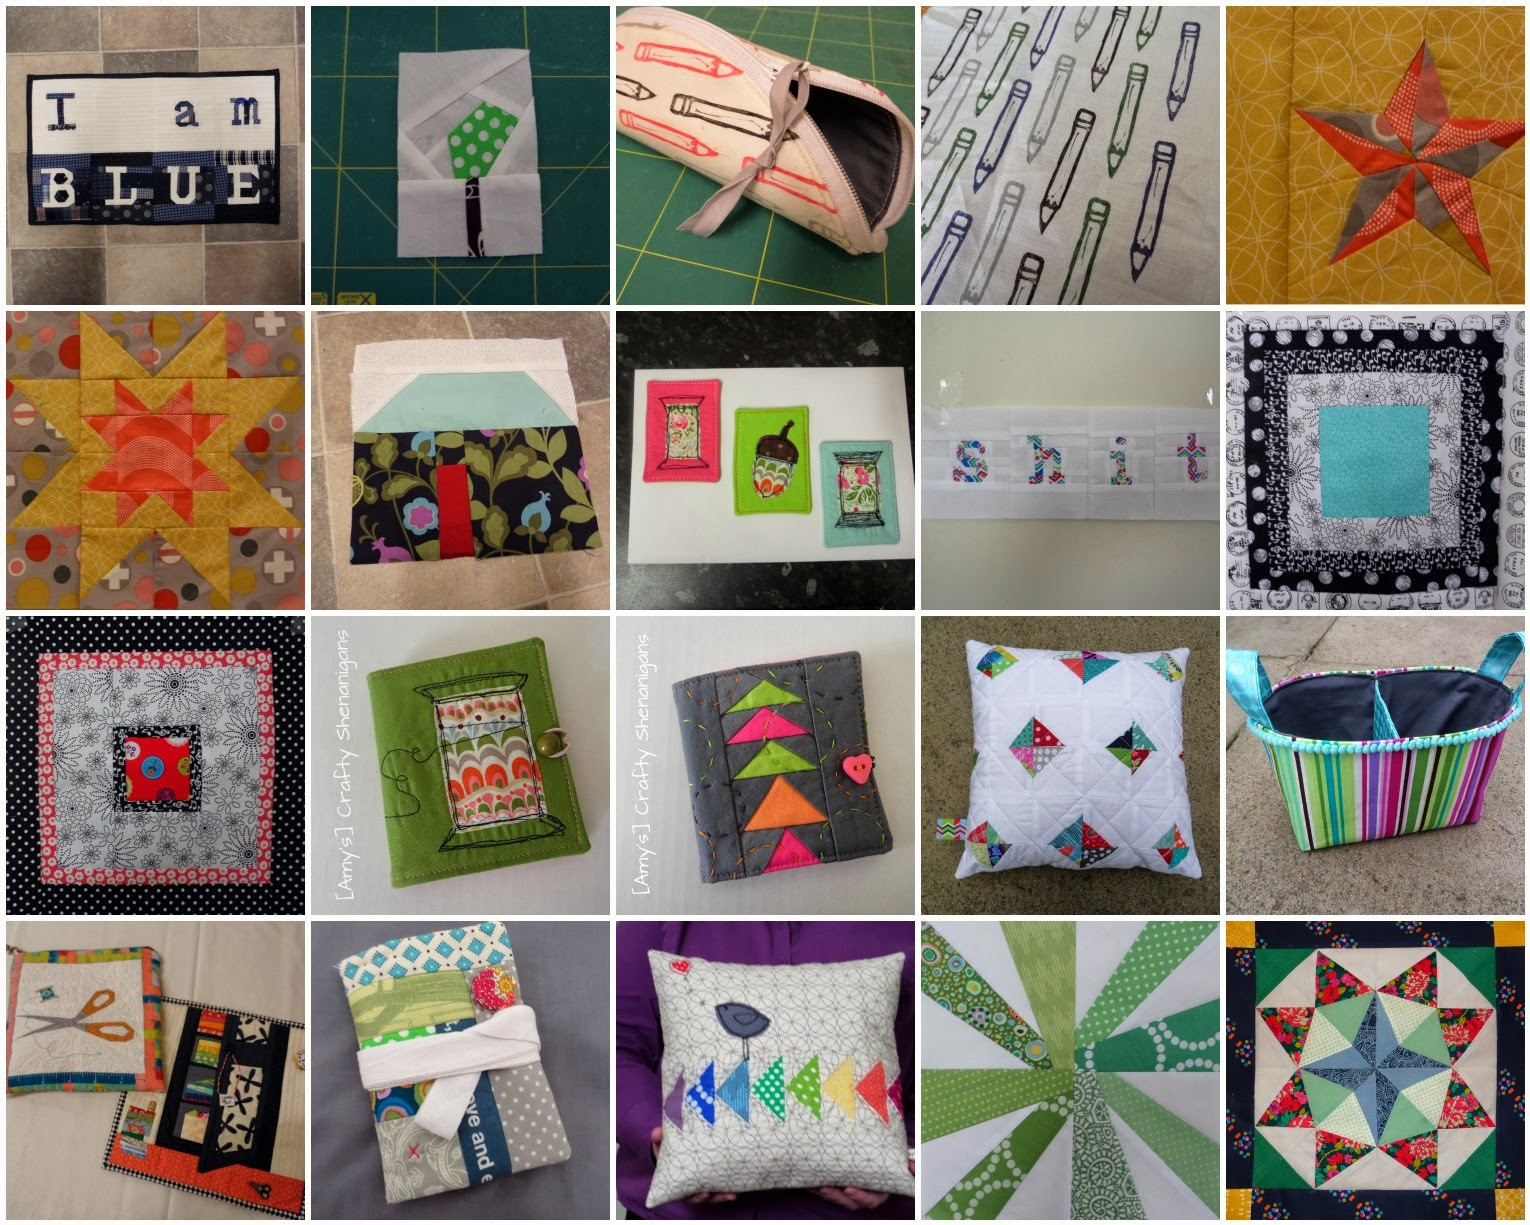 amys crafty shenanigans september month in review